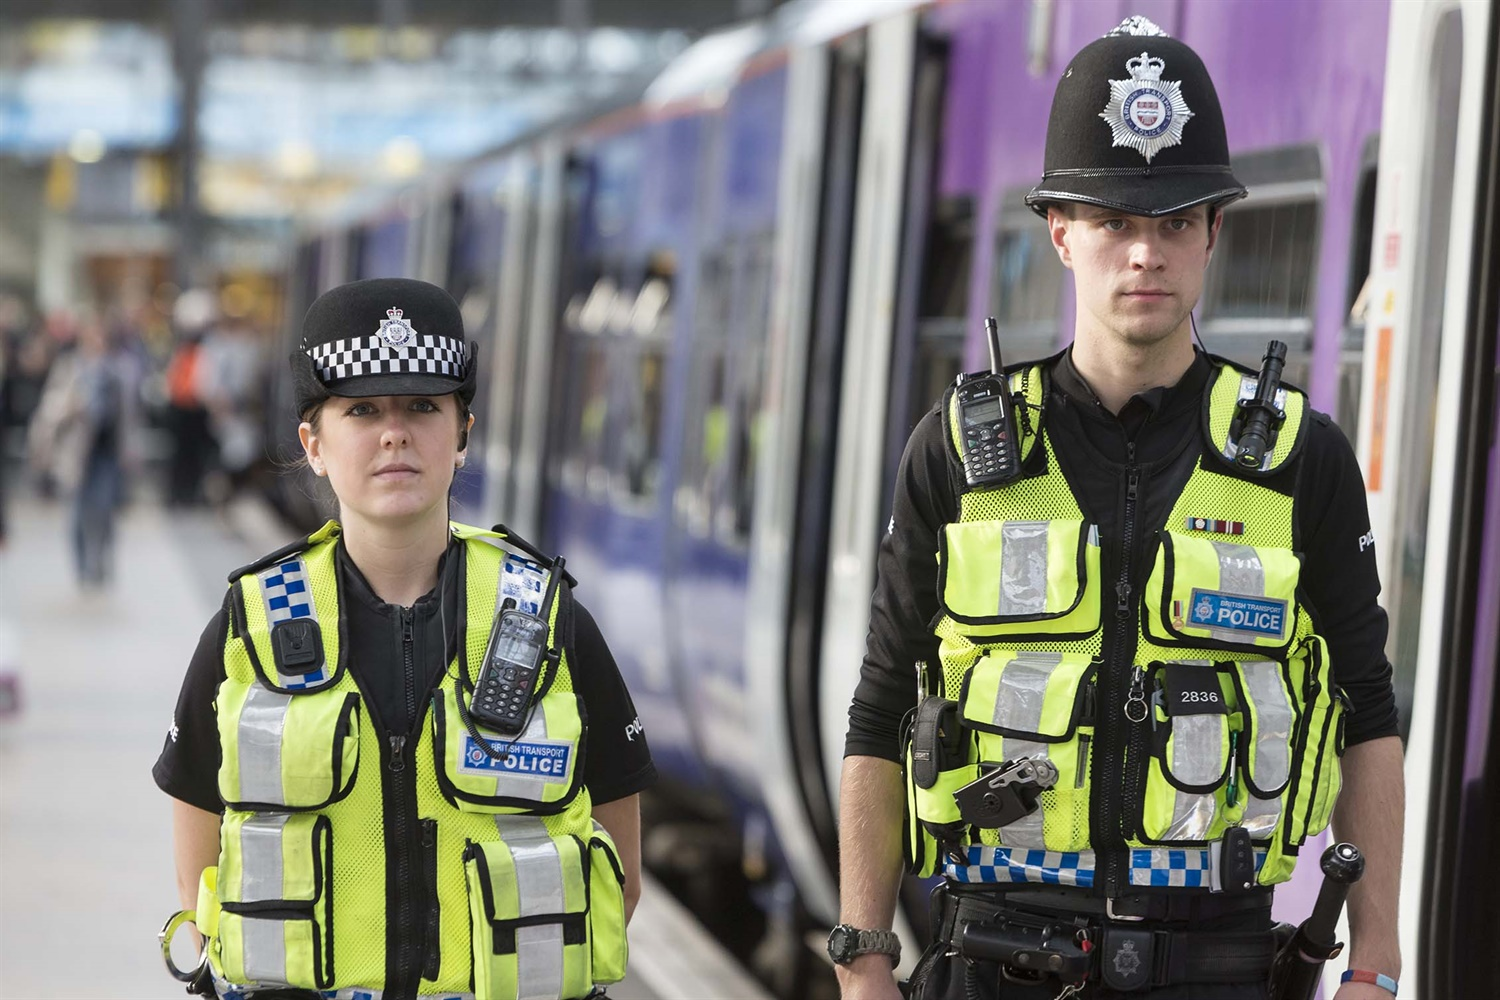 BTP reveals rise in violent and sexual crime despite overall fall